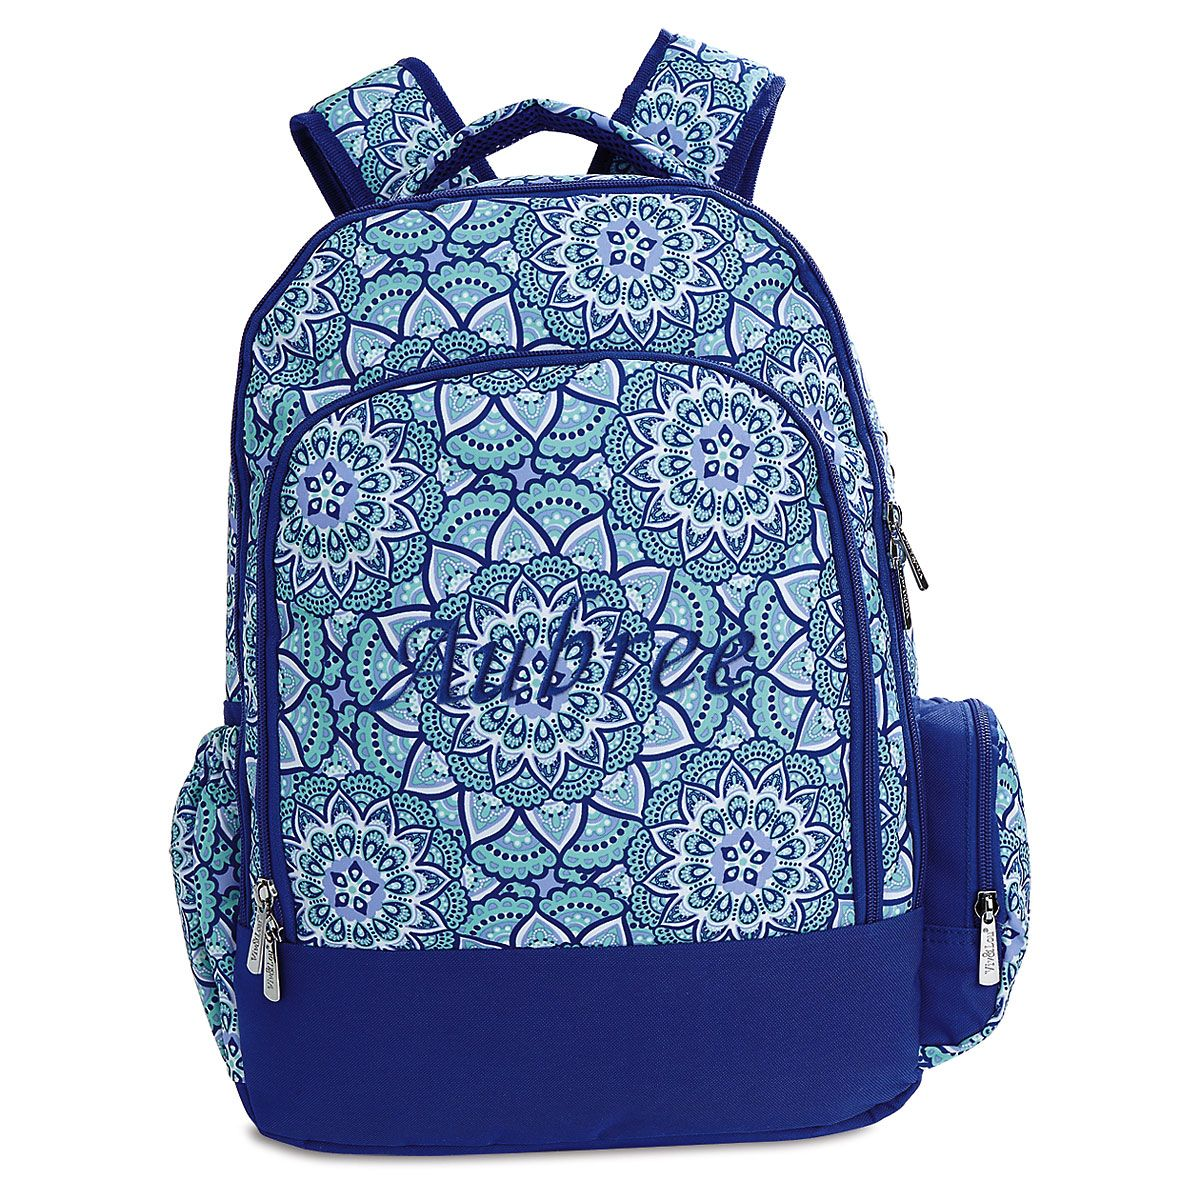 Personalized Day Dream Backpack - Name